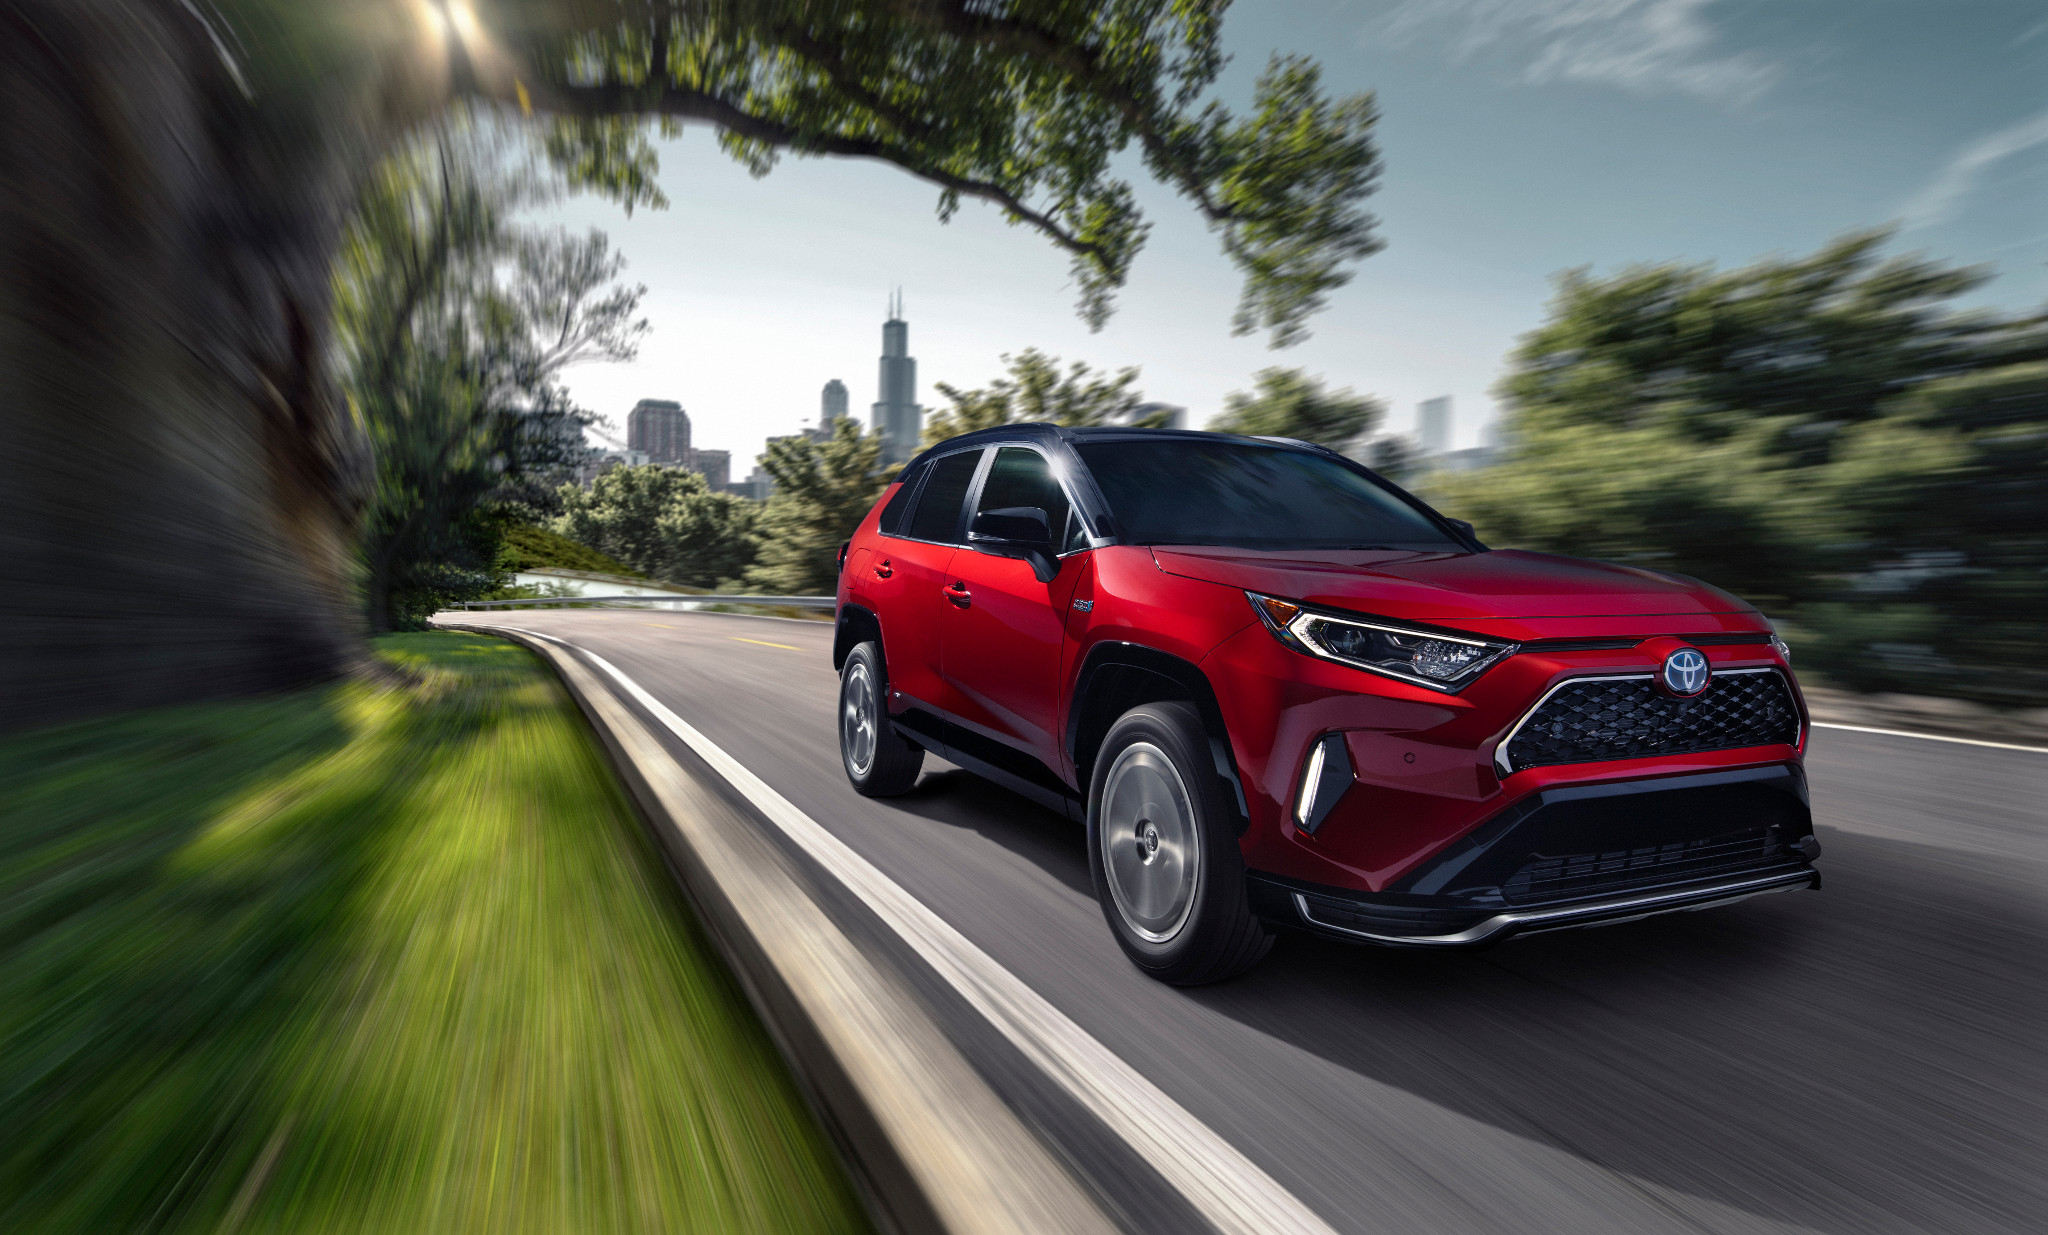 2021 Toyota RAV4 Prime: Plug Into Performance With 302-HP Plug-In Hybrid